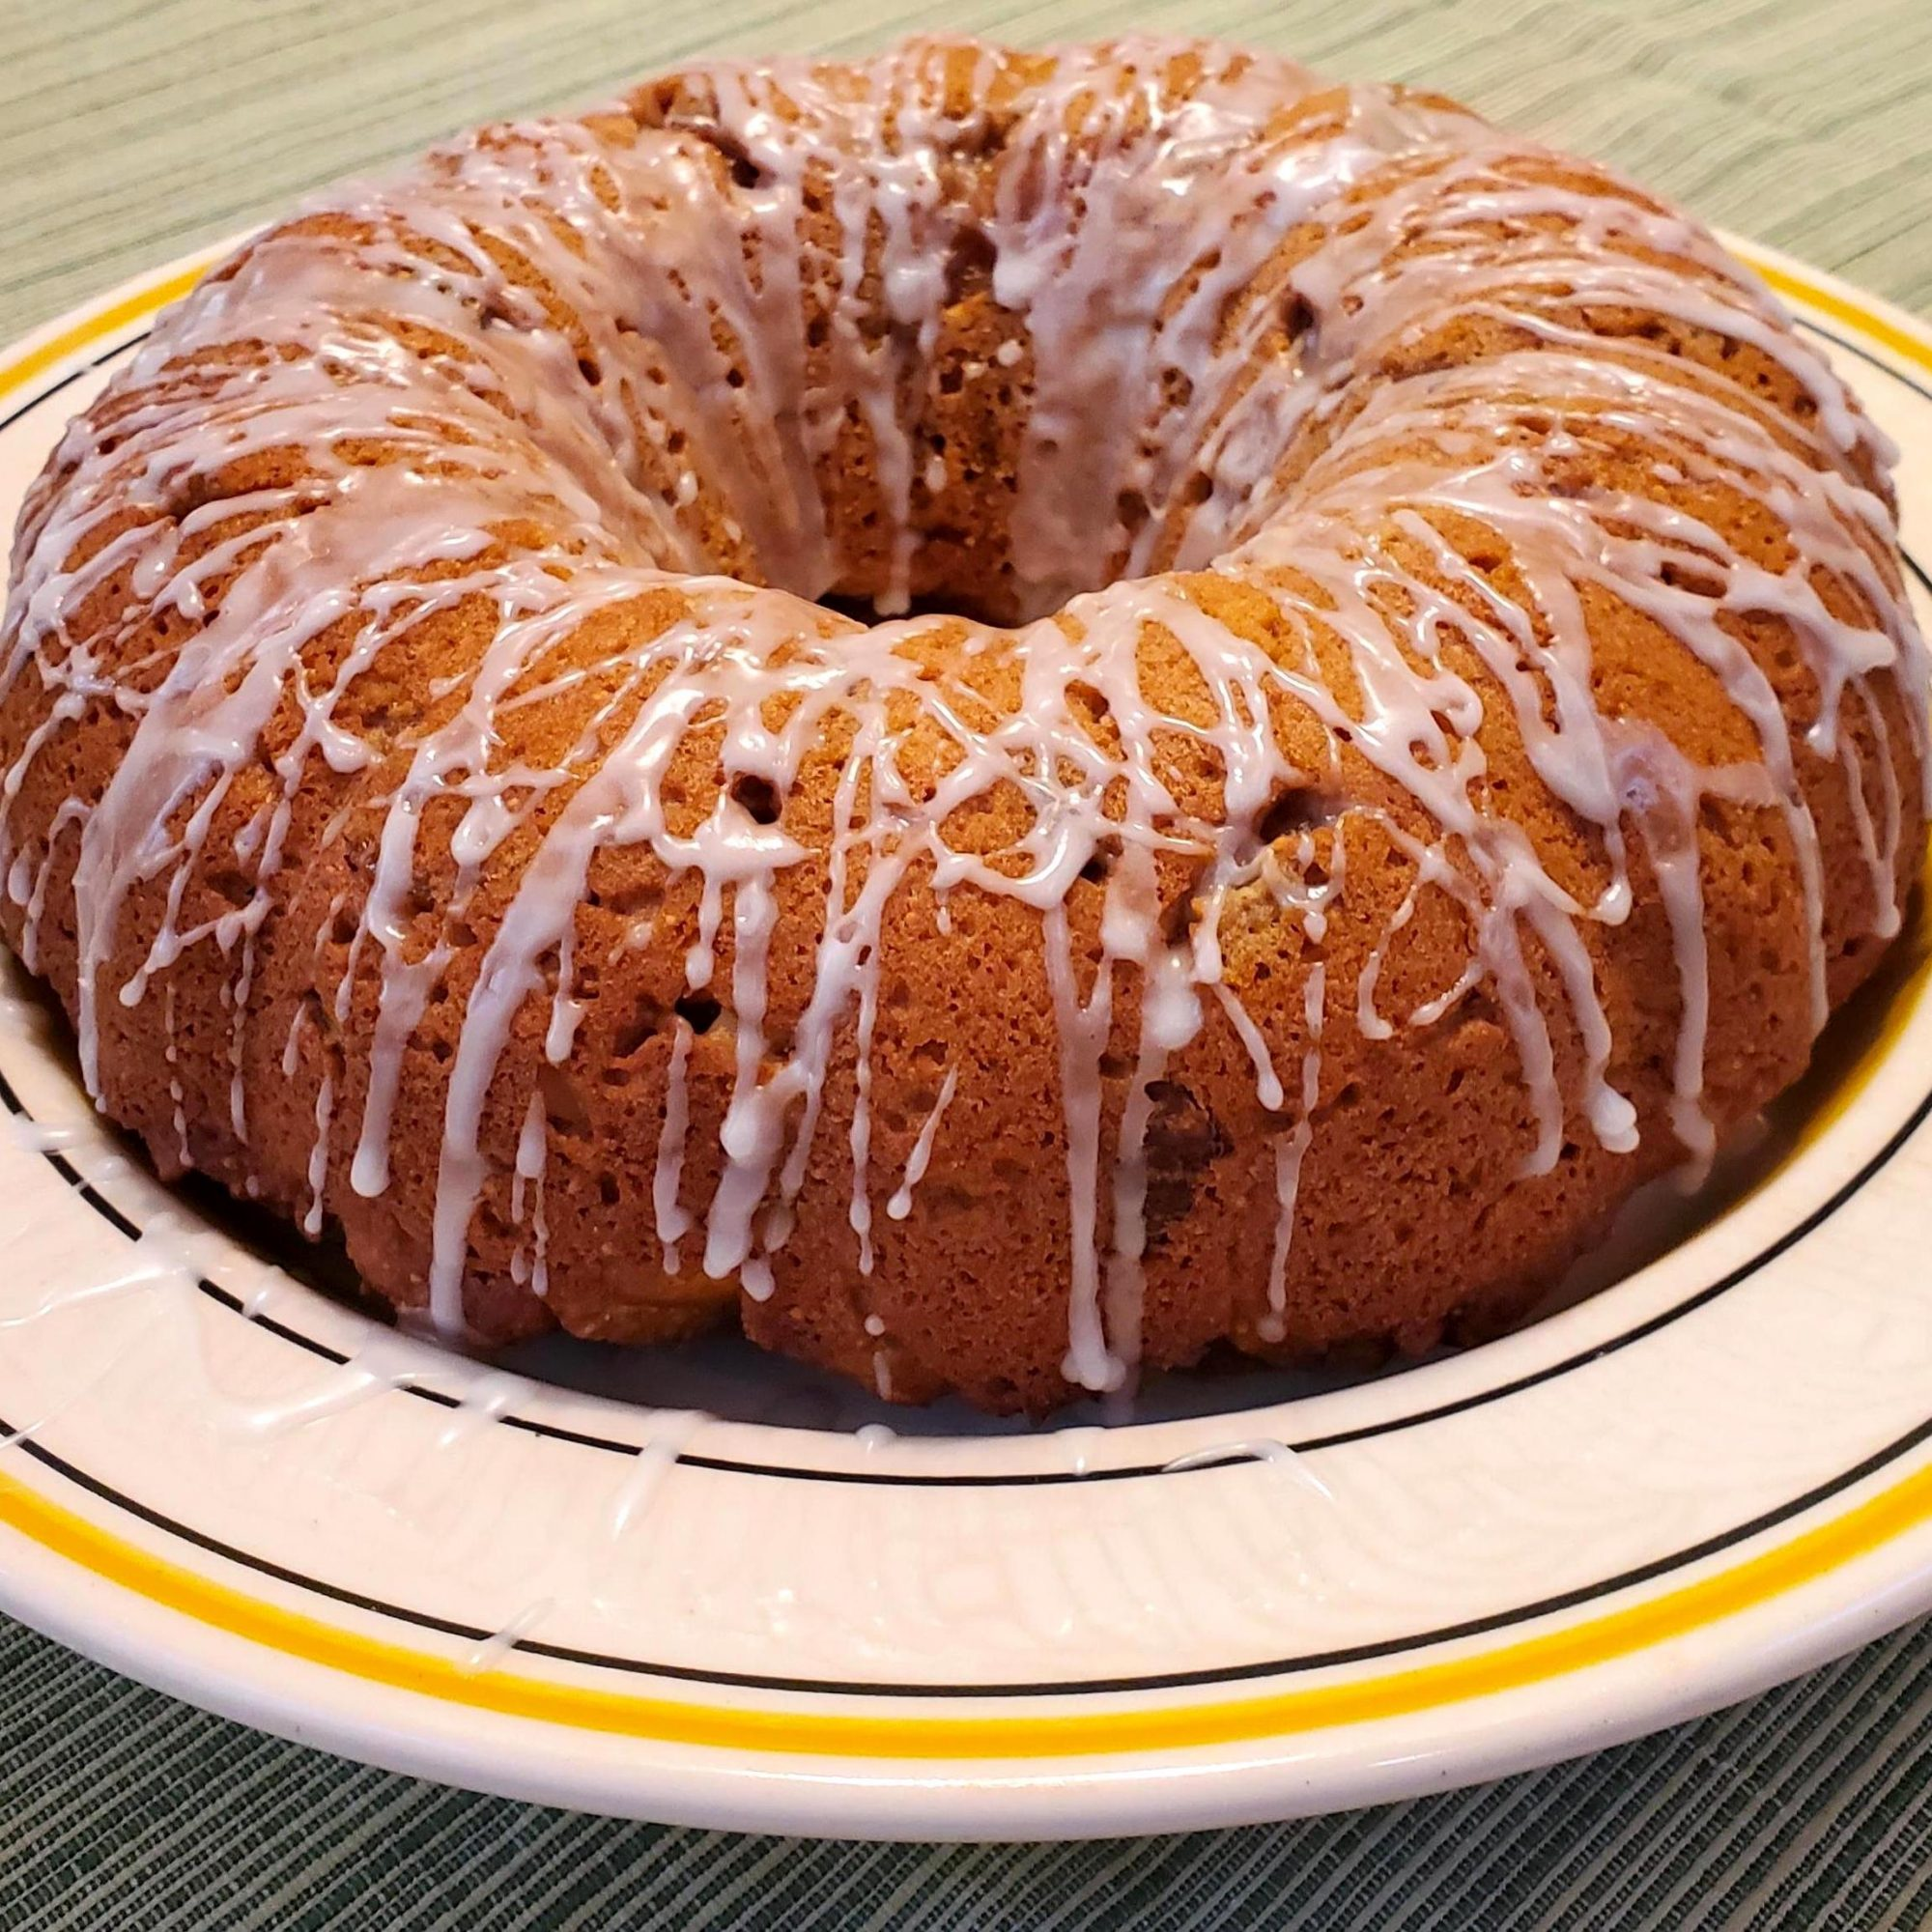 figgy pudding with icing drizzle